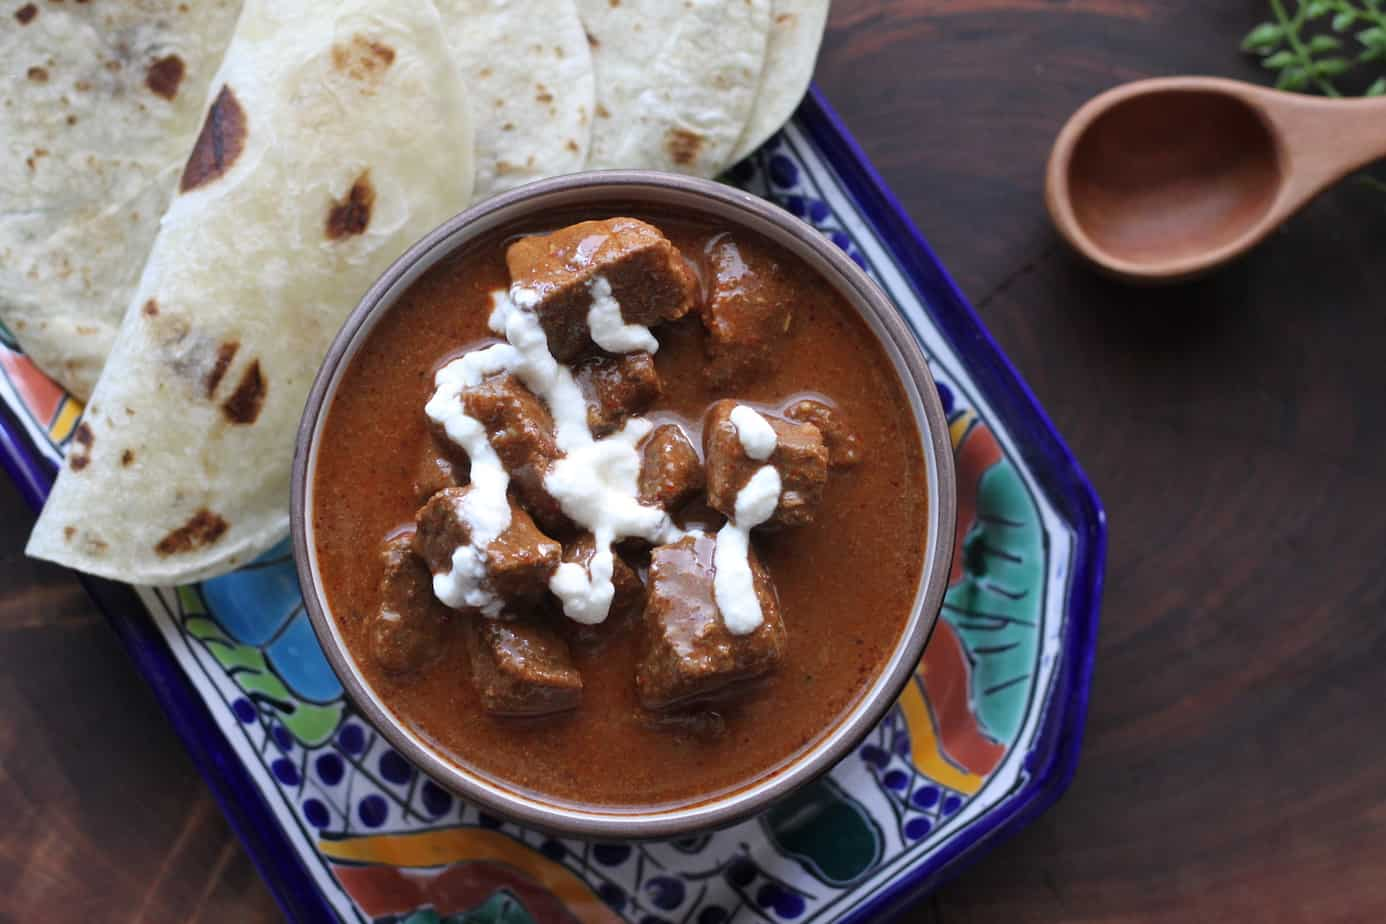 Texas Chile with yogurt drizzle and tortillas